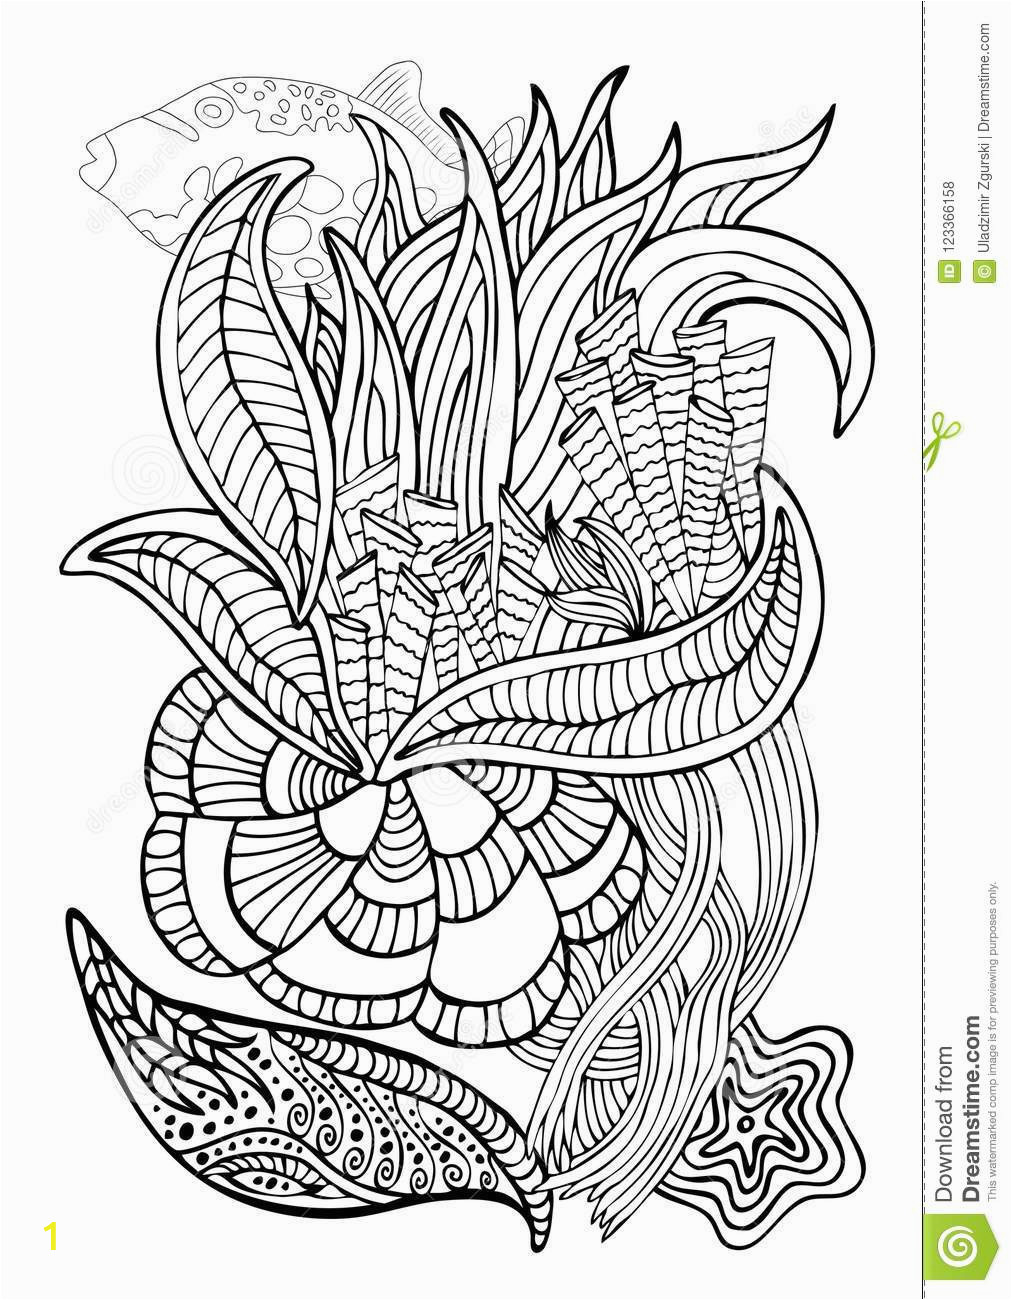 hand drawn page zendoodle style adult coloring book abst abstract marine floral motifs coral fishes seashells